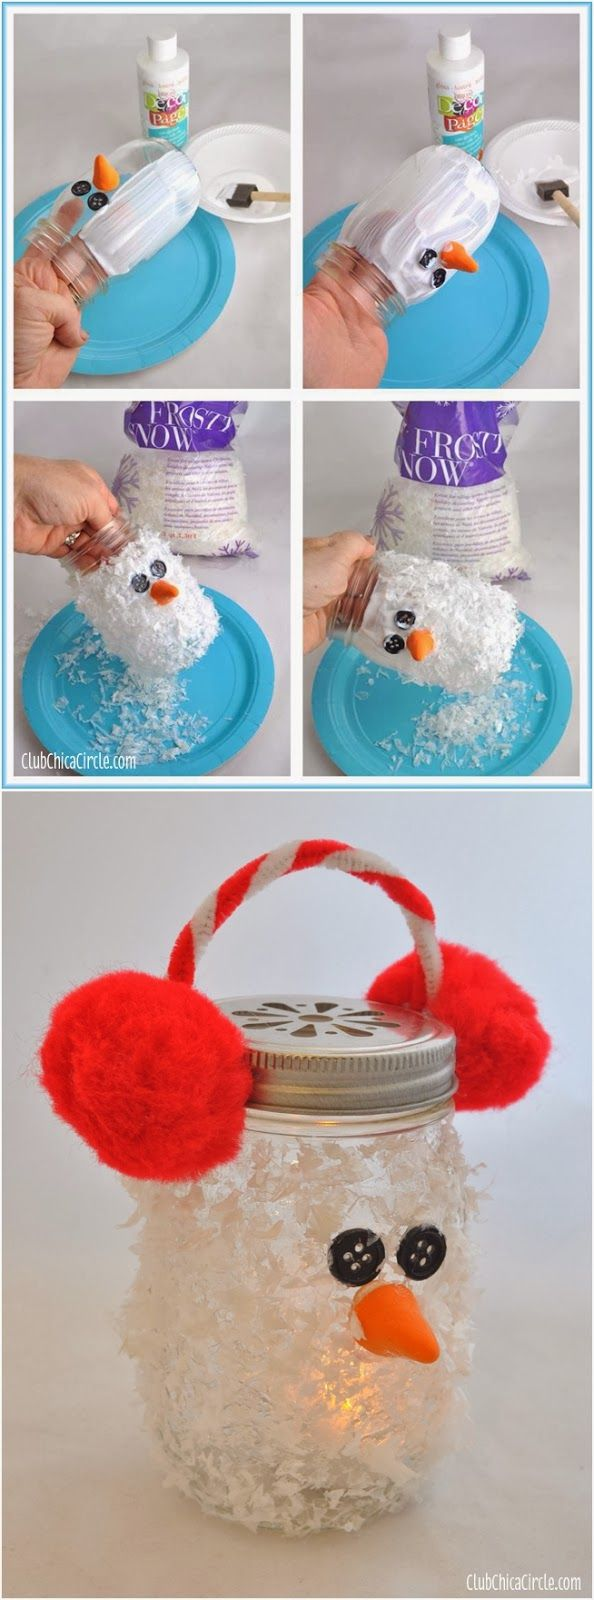 mens parka jackets DIY Snowman Mason Jar Luminary Ornament